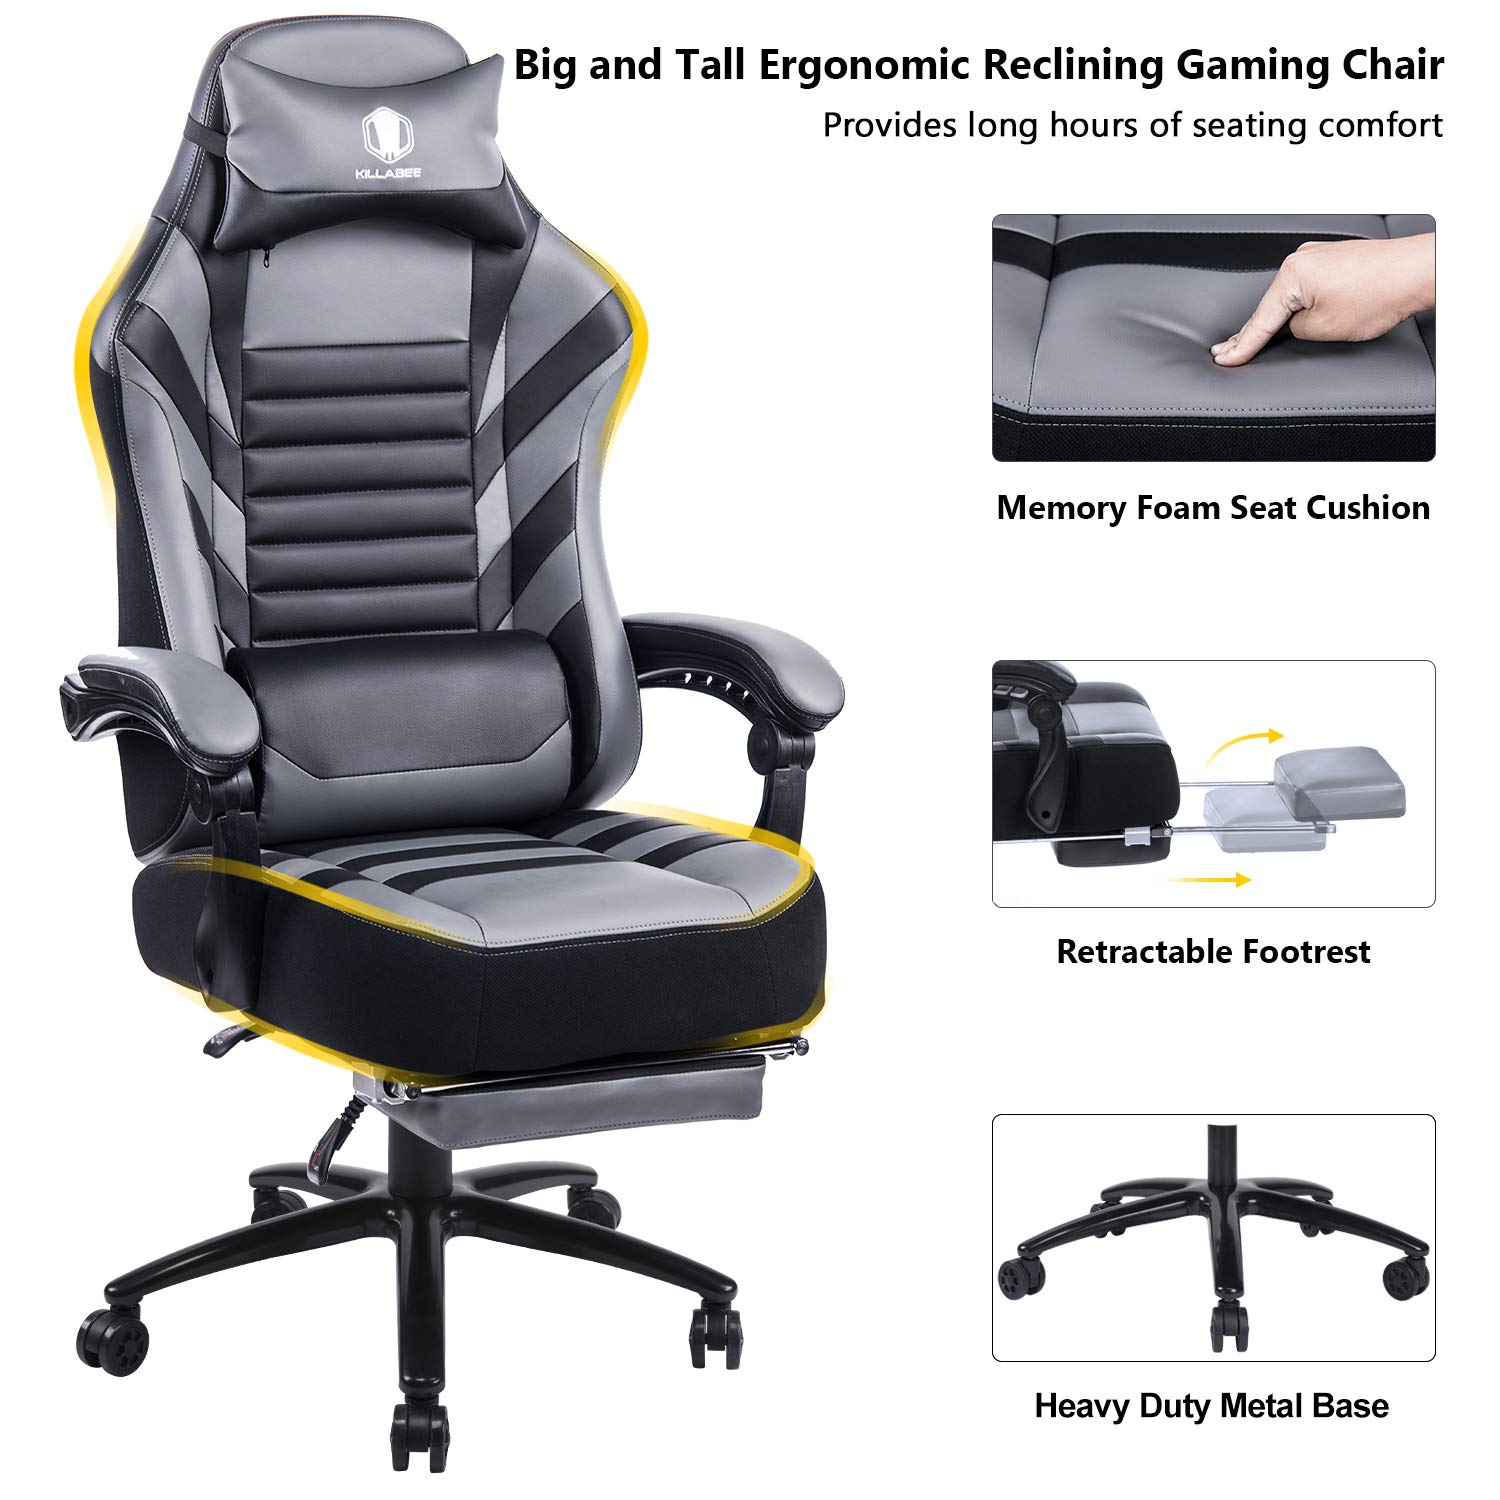 Back Angle and 3D Wide Arms Ergonomic High-Back Leather Racing Executive Metal Base Computer Desk Office Racing Chair Adjustable Tilt Heavy Duty 400LB Memory Foam Large Gaming Chair